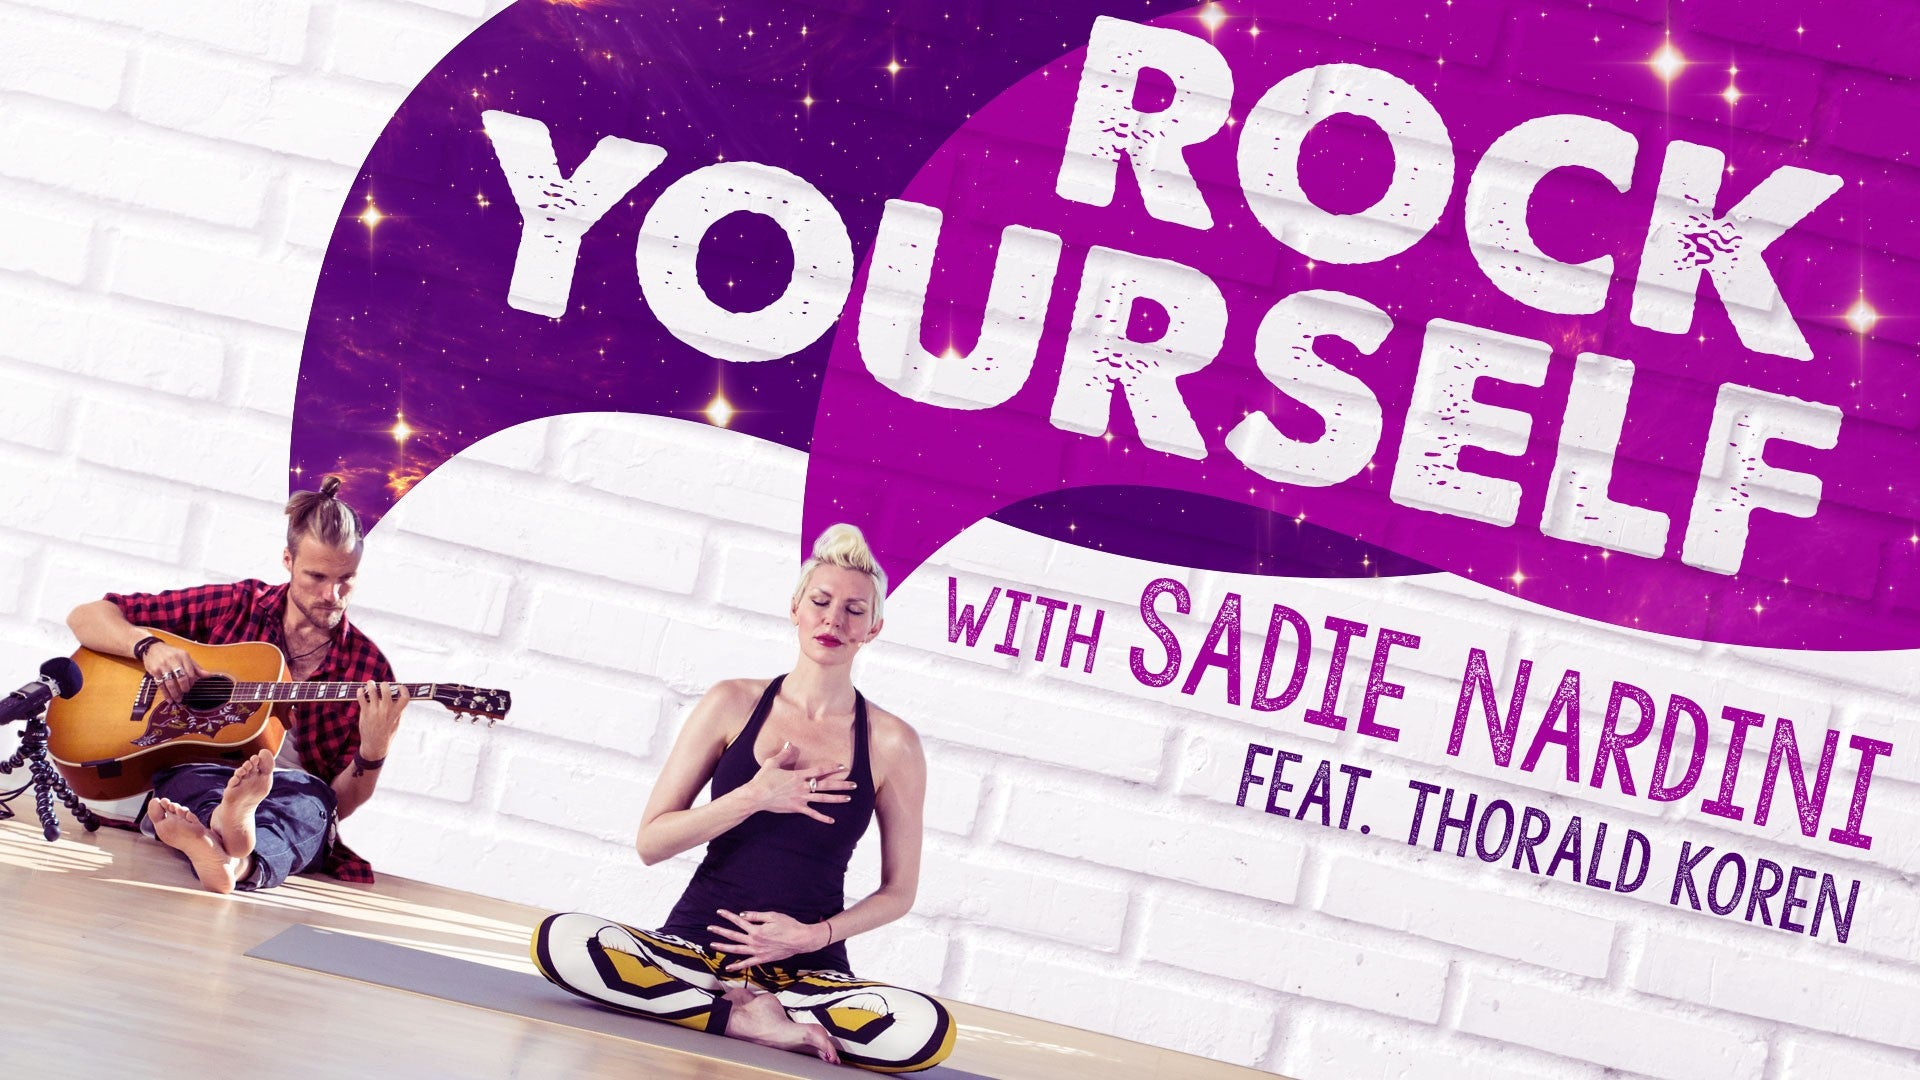 Rock Yourself Artwork